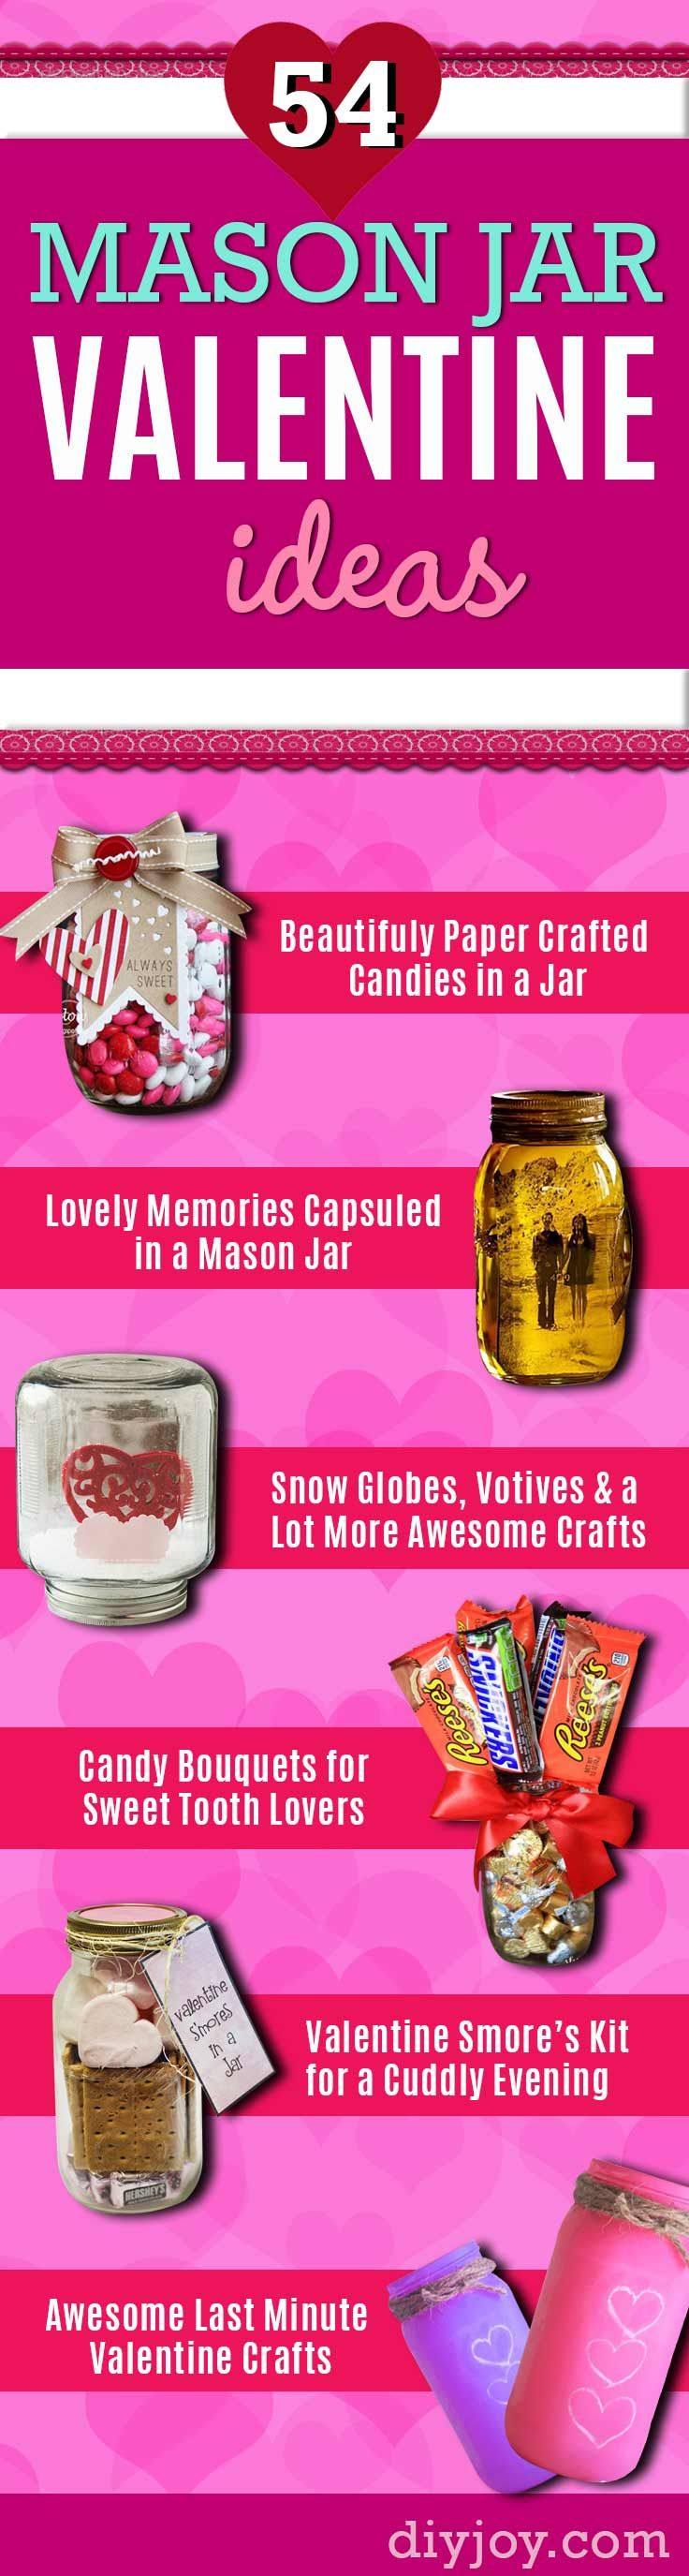 Mason Jar Valentine Gifts - DIY Valentines Day Ideas